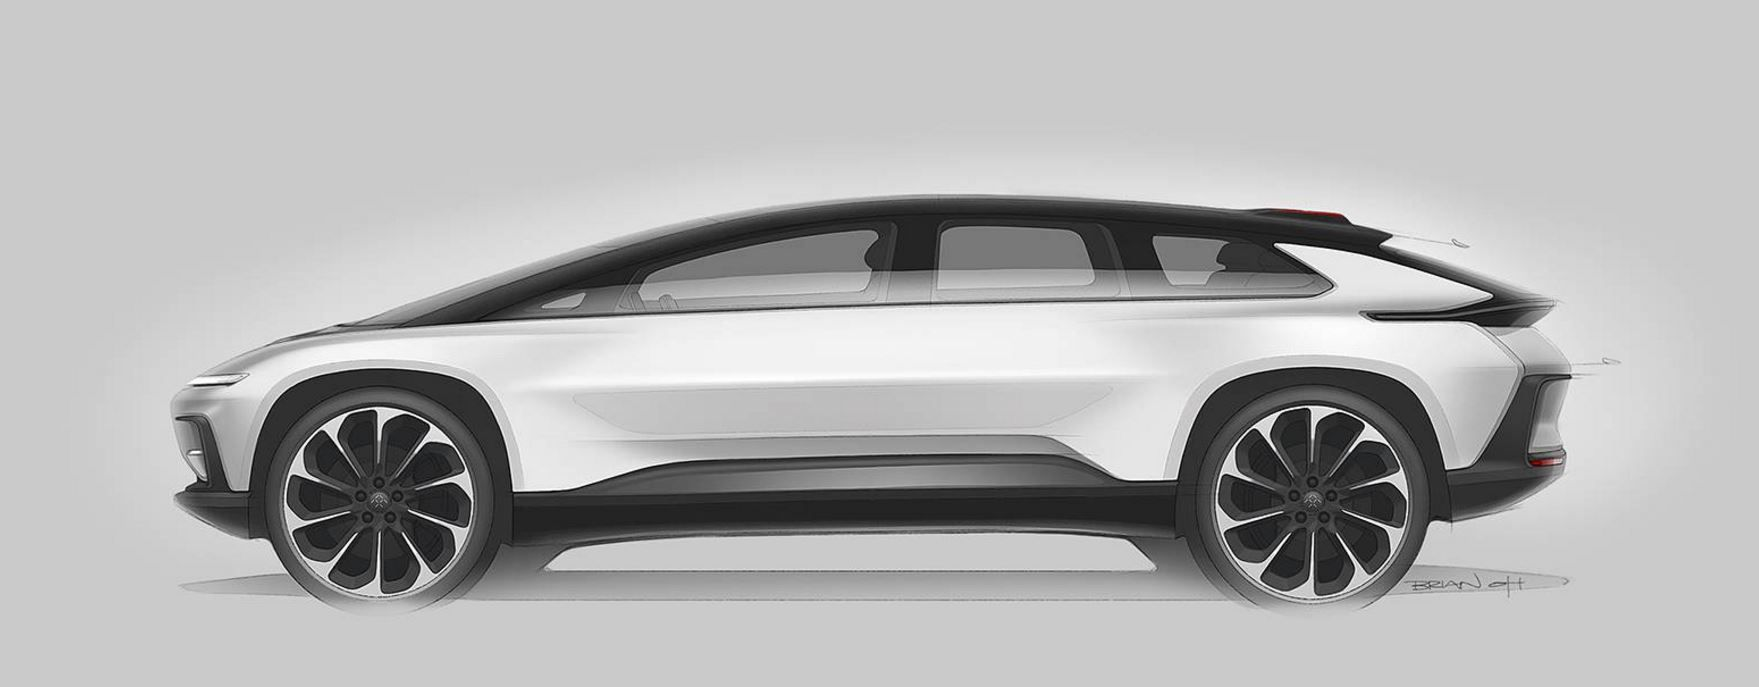 faraday future ff91 sketch brian oh car pinterest